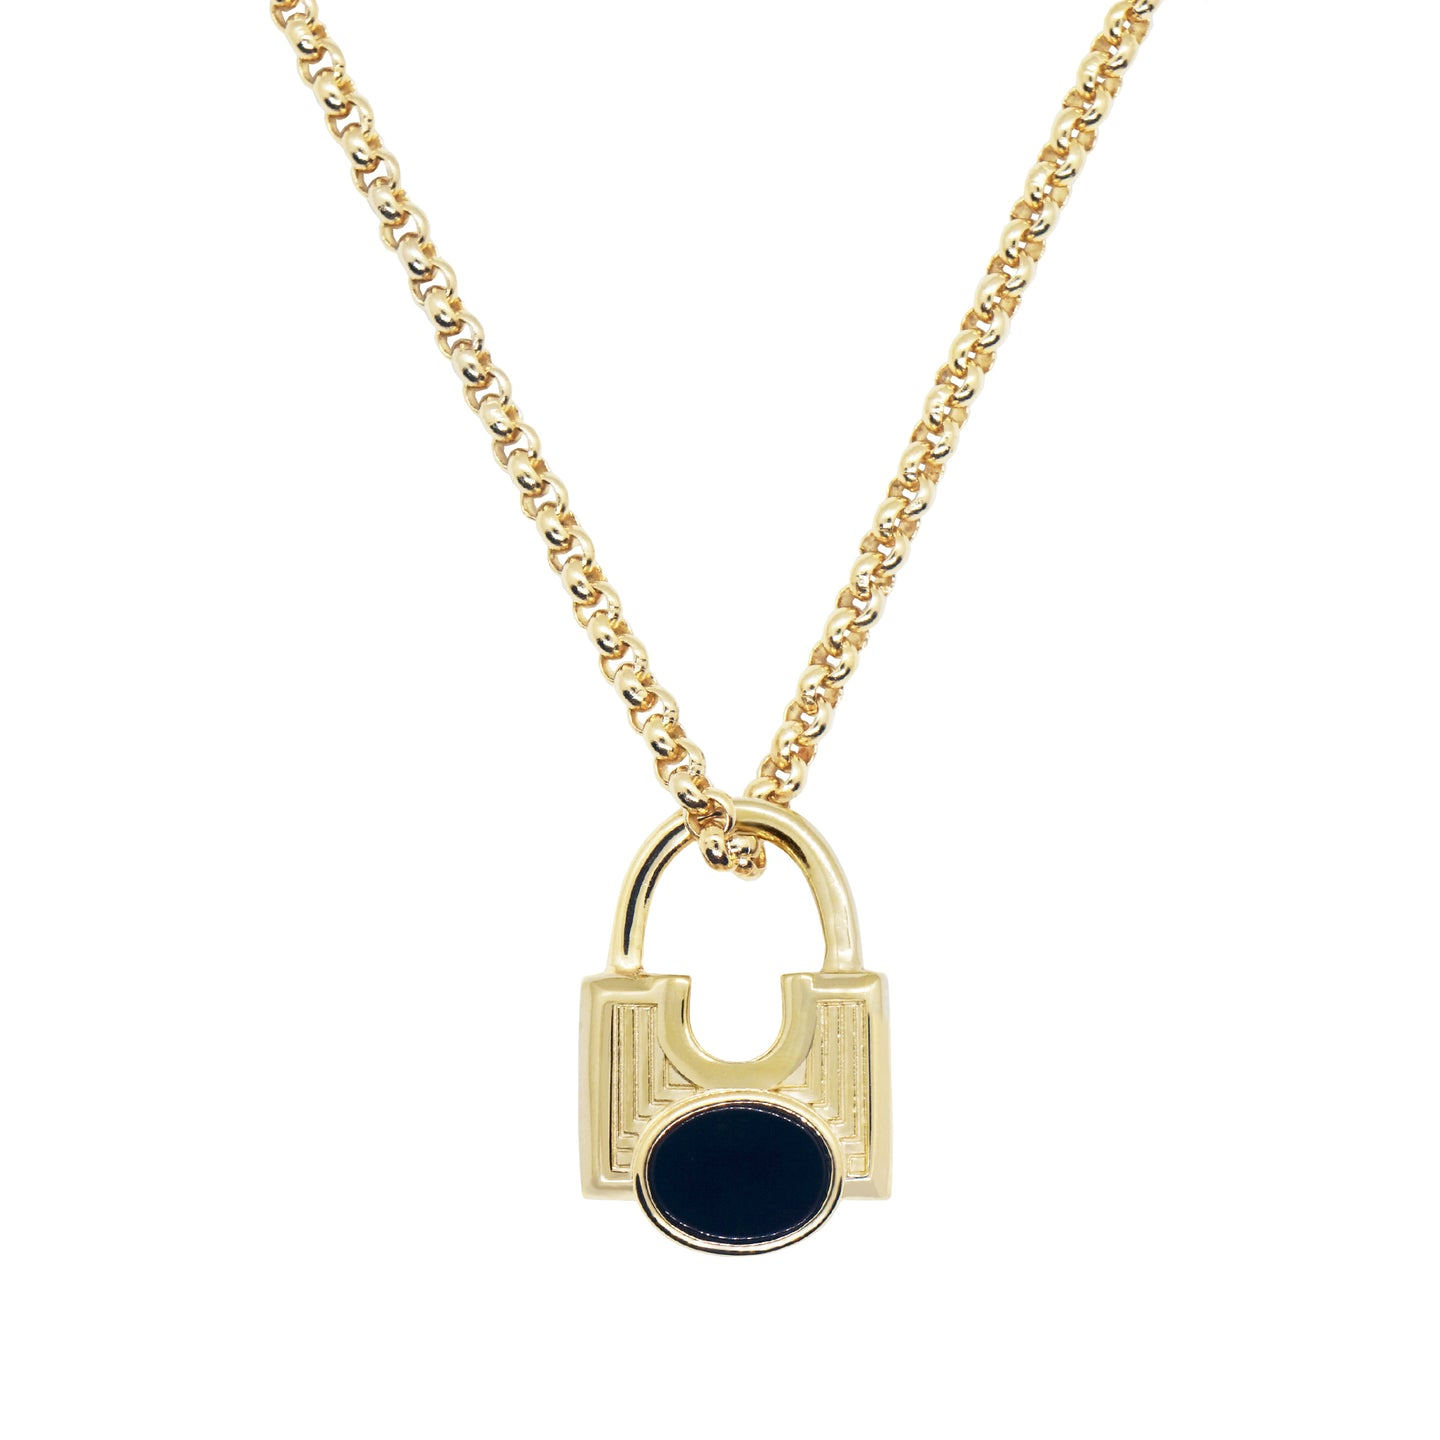 close up product shot of Pawnshop gold plated sterling silver black onyx padlock necklace. Box chain, with padlock charm- engraved front and oval black semi precious onyx stone centre. Shot on a white background.